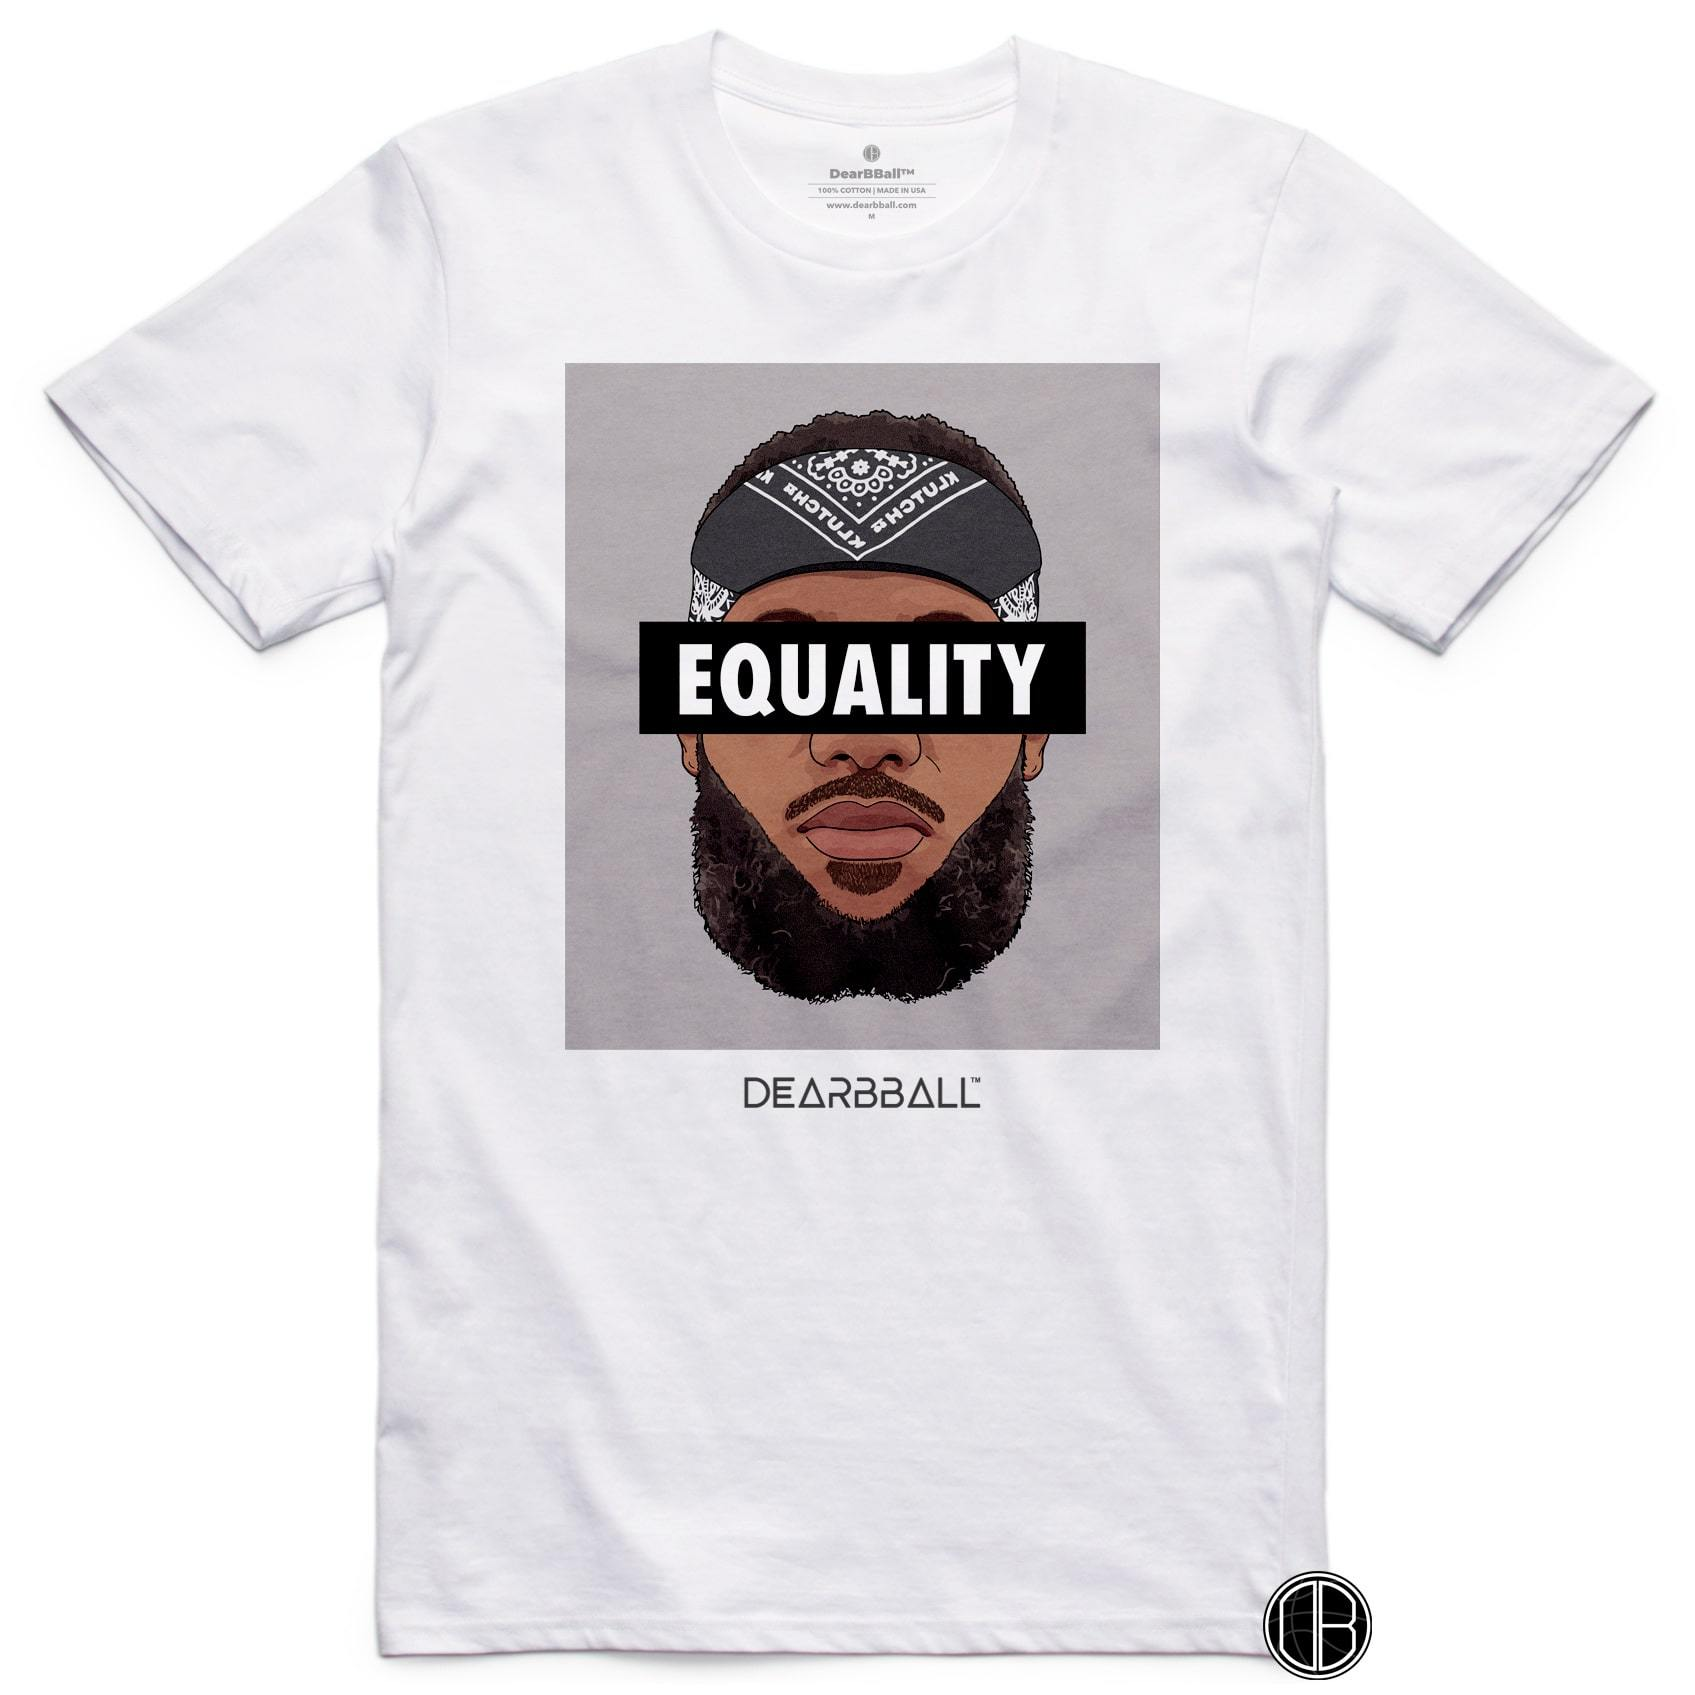 Equality_Shirt_Dearbball_White